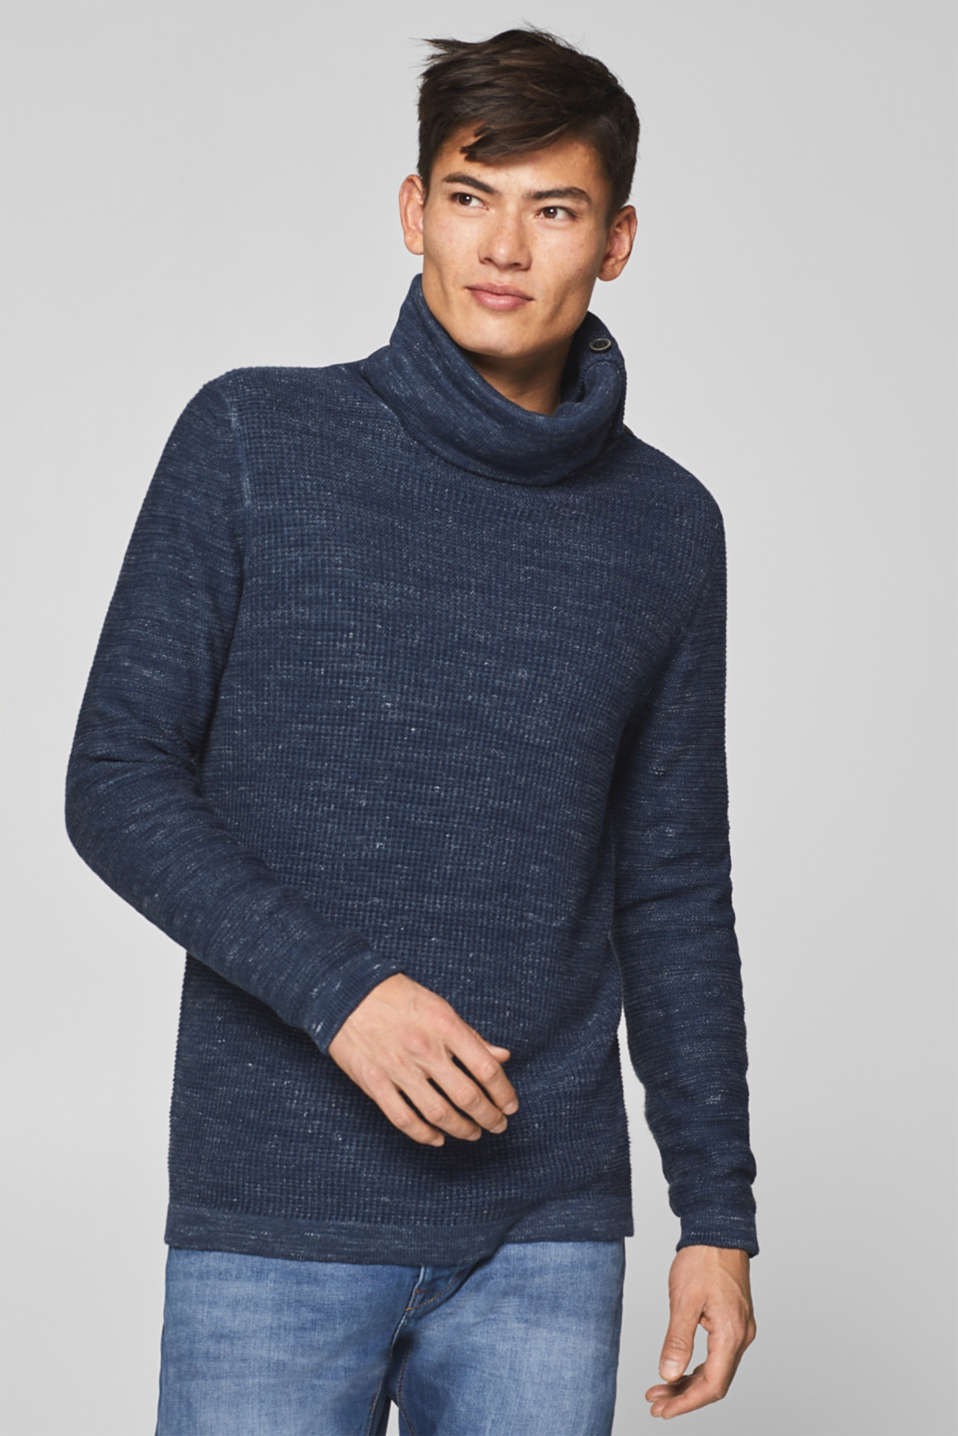 edc - Jumper with a high collar, 100% cotton